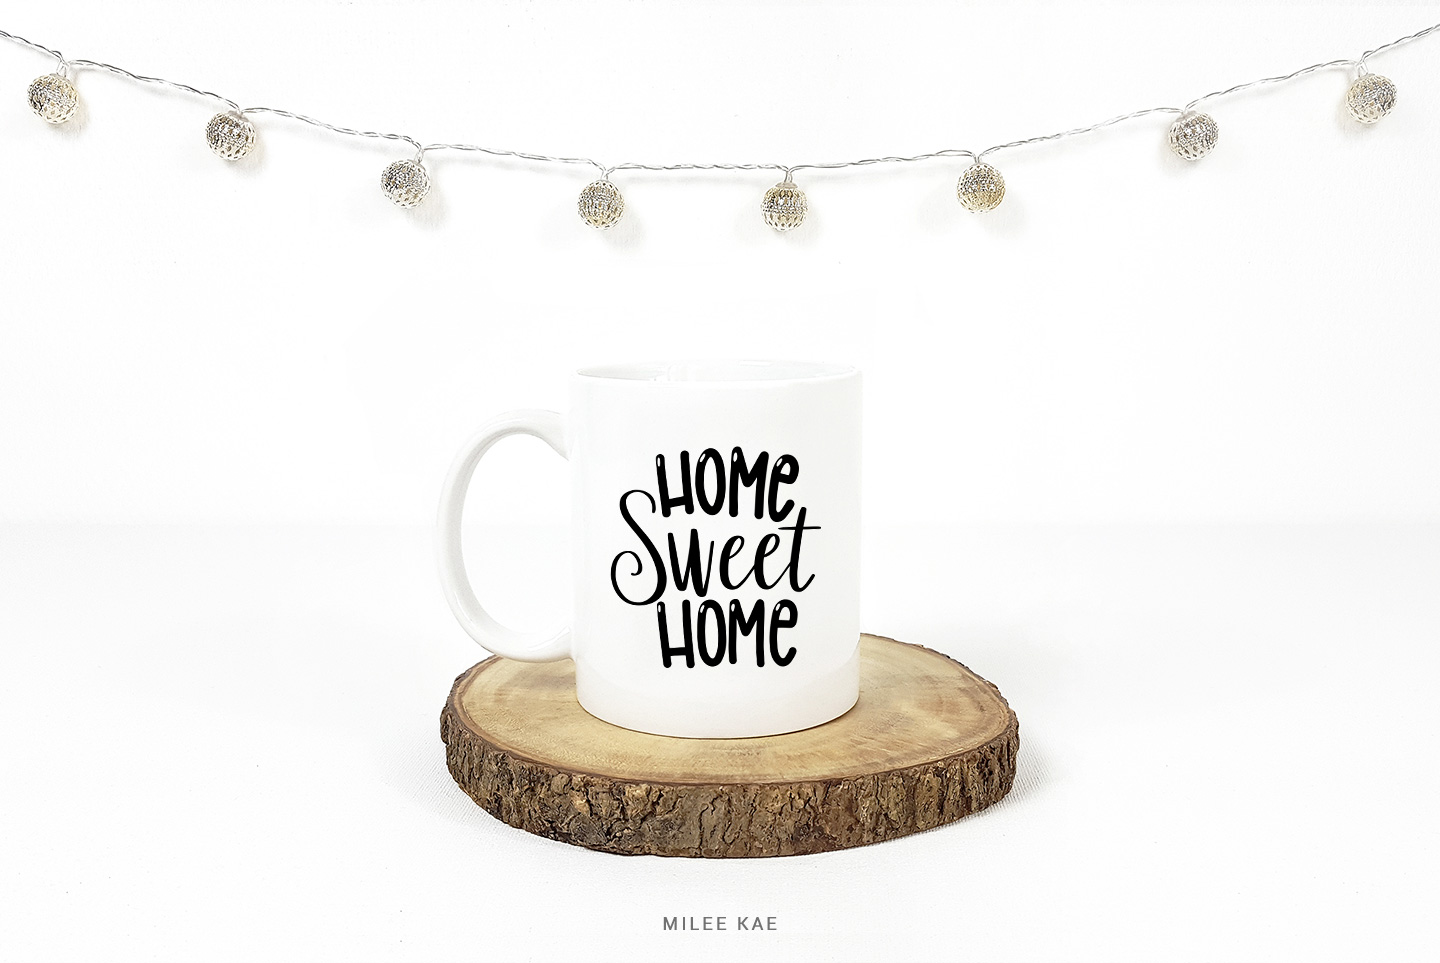 Home Sweet Home, Quote SVG, Cutting file, Decal example image 2